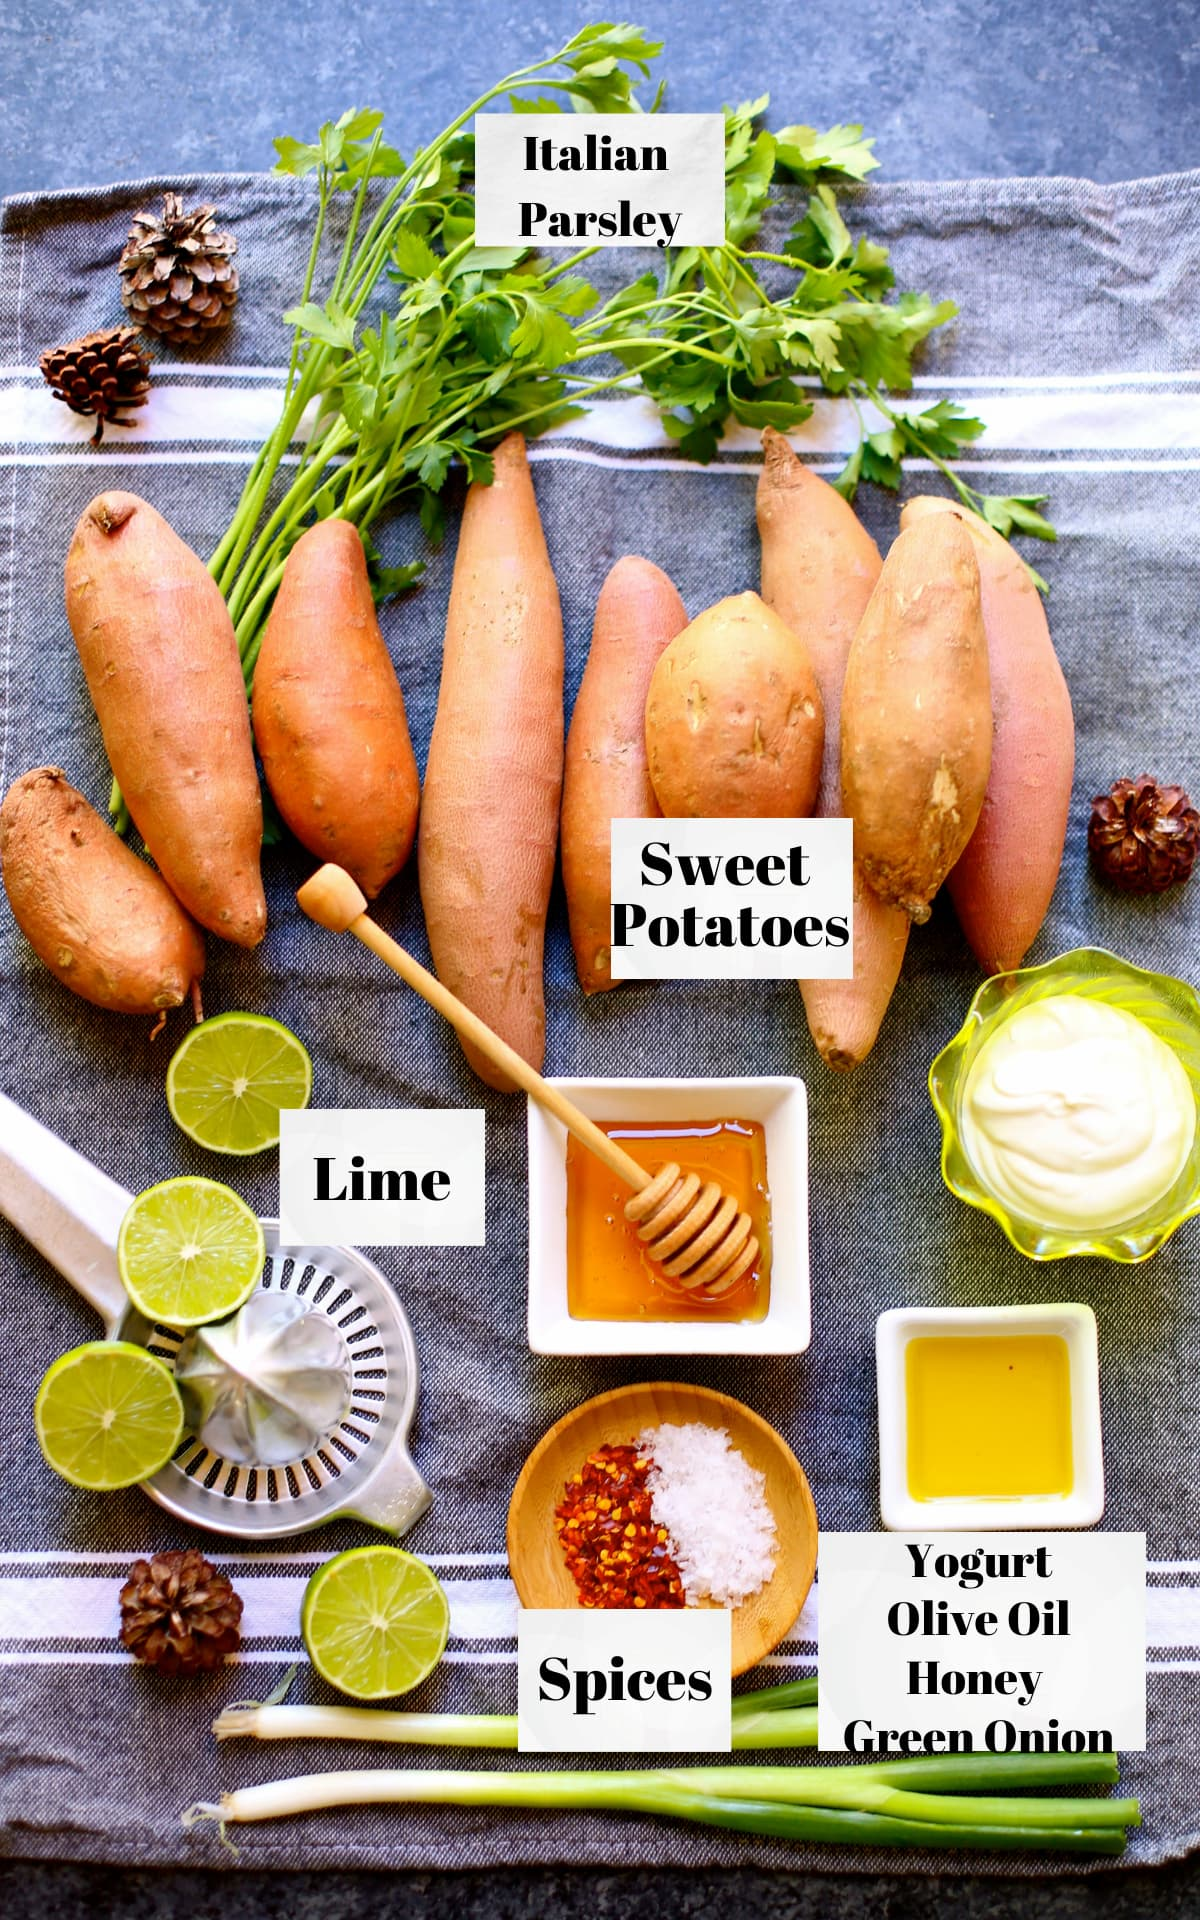 a table of ingredients, sweet potatoes, olive oil, lime, honey, soices and italian parsley.